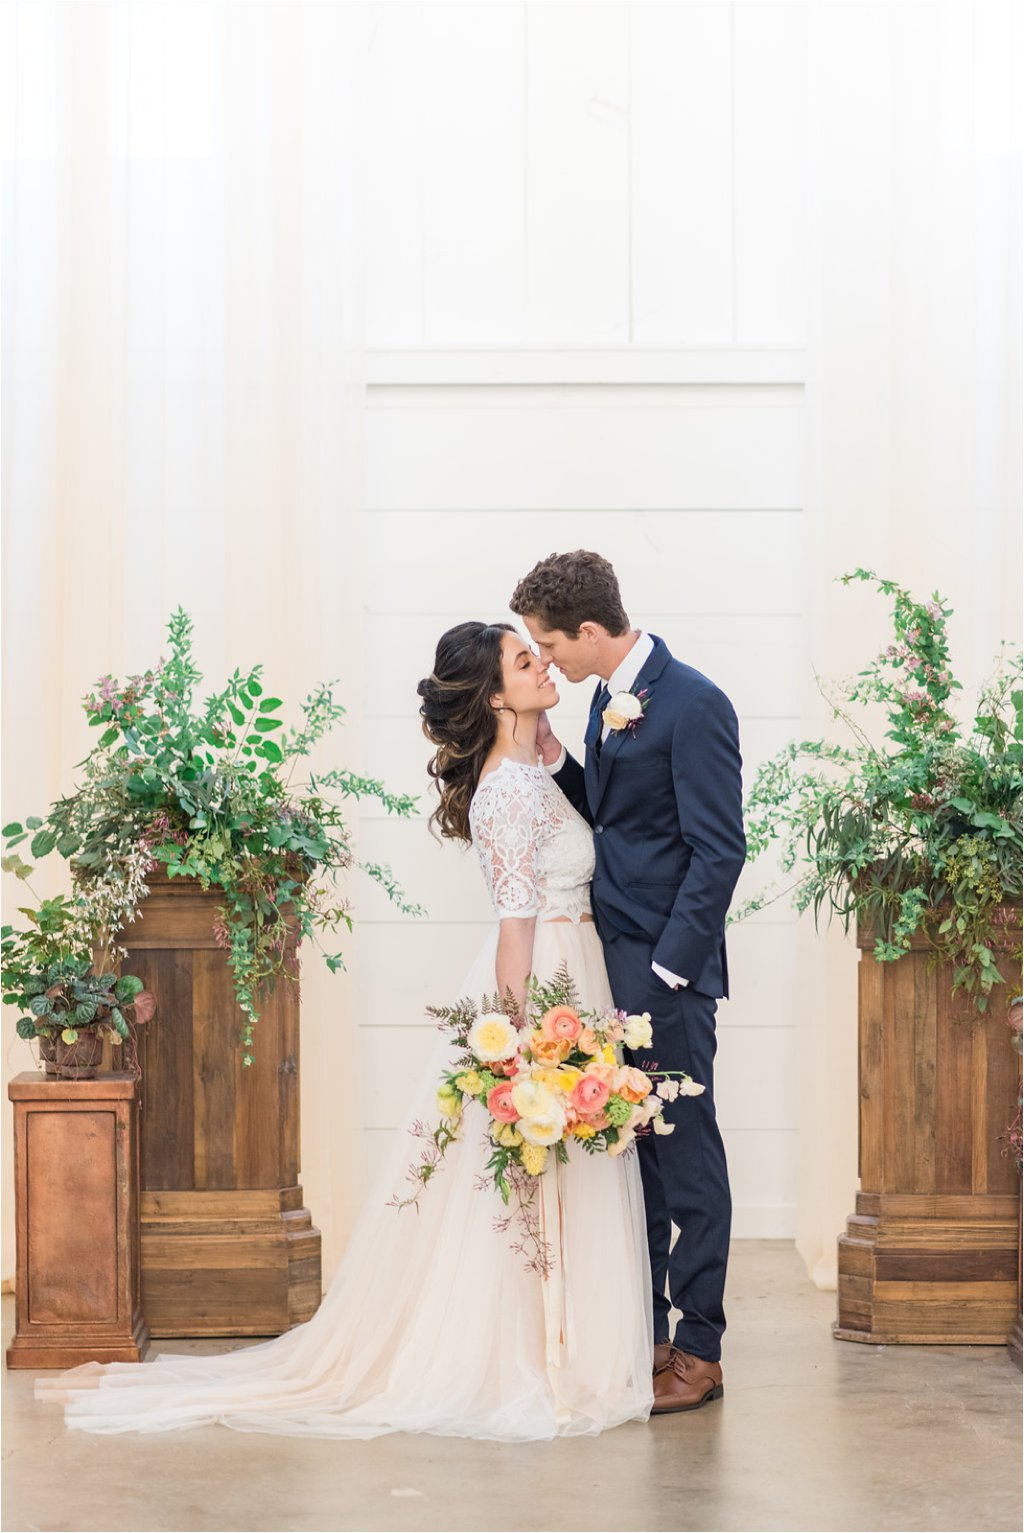 The Venue wedding ceremony by Lori Lynn Photography